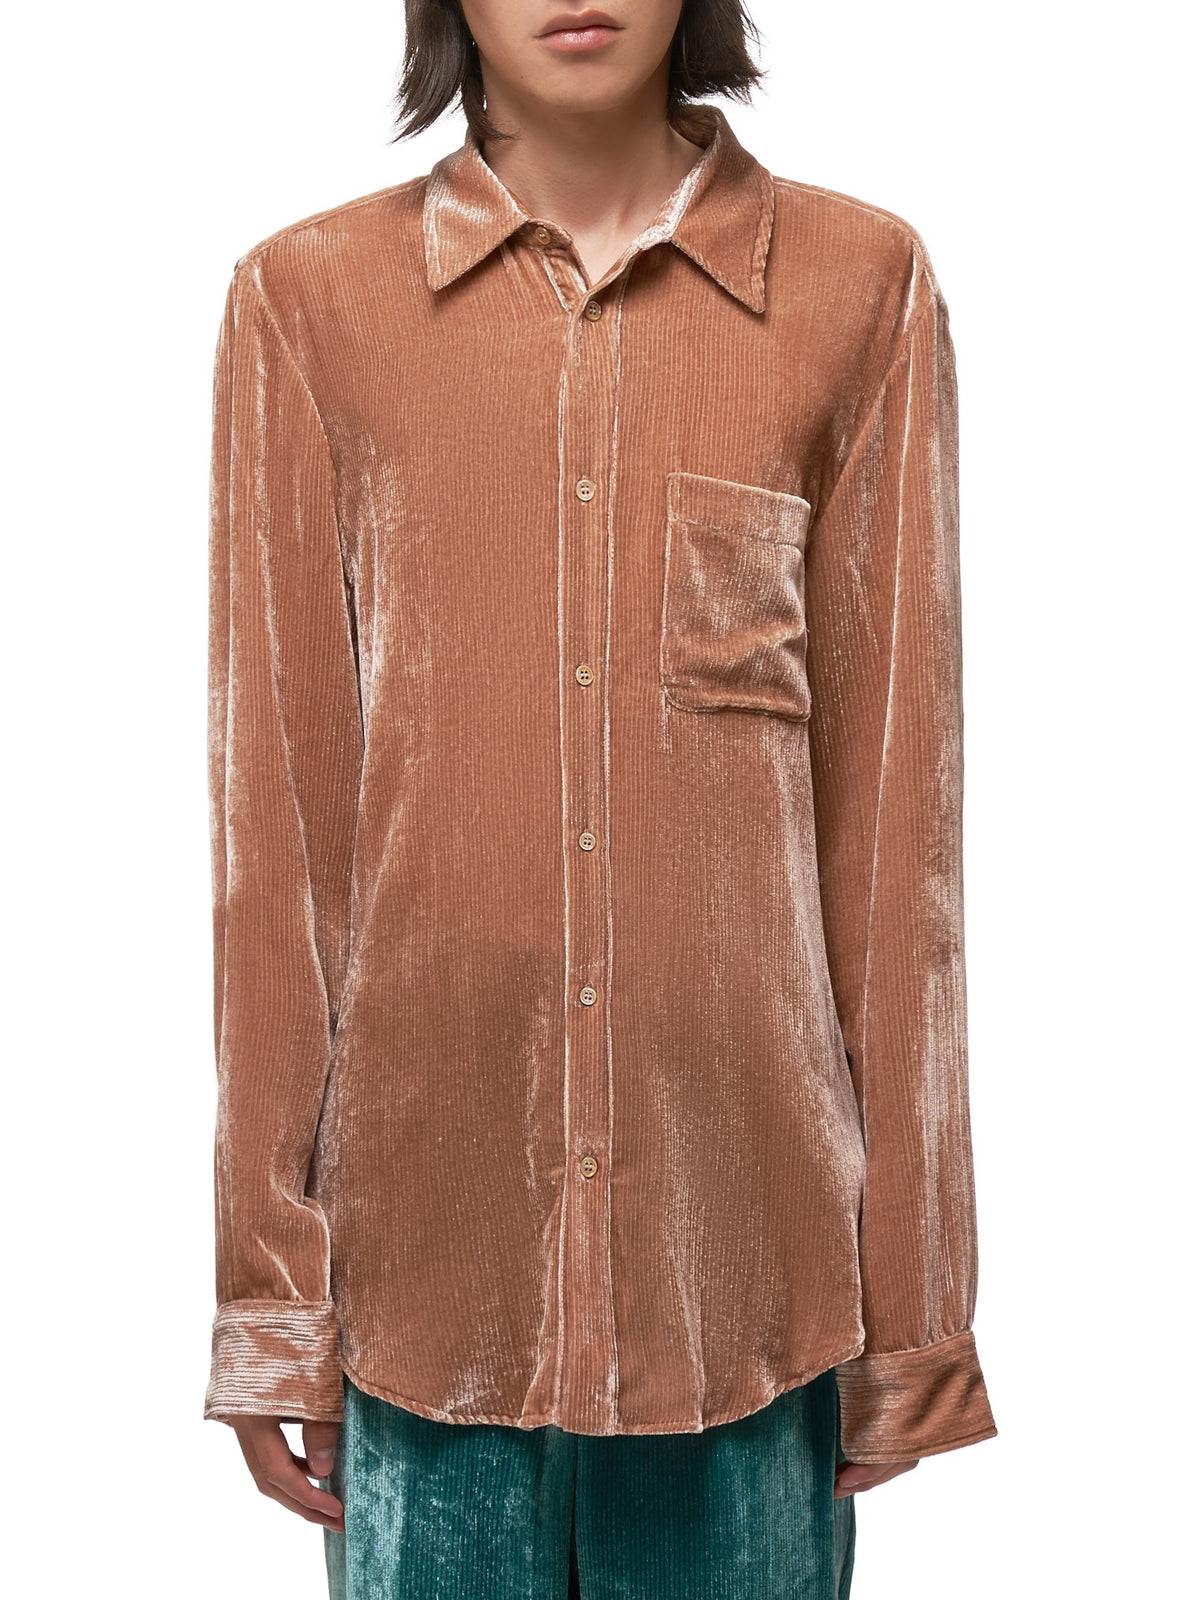 Sander Fluid Cord Shirt (M7FC301-DUSTY-ROSE)